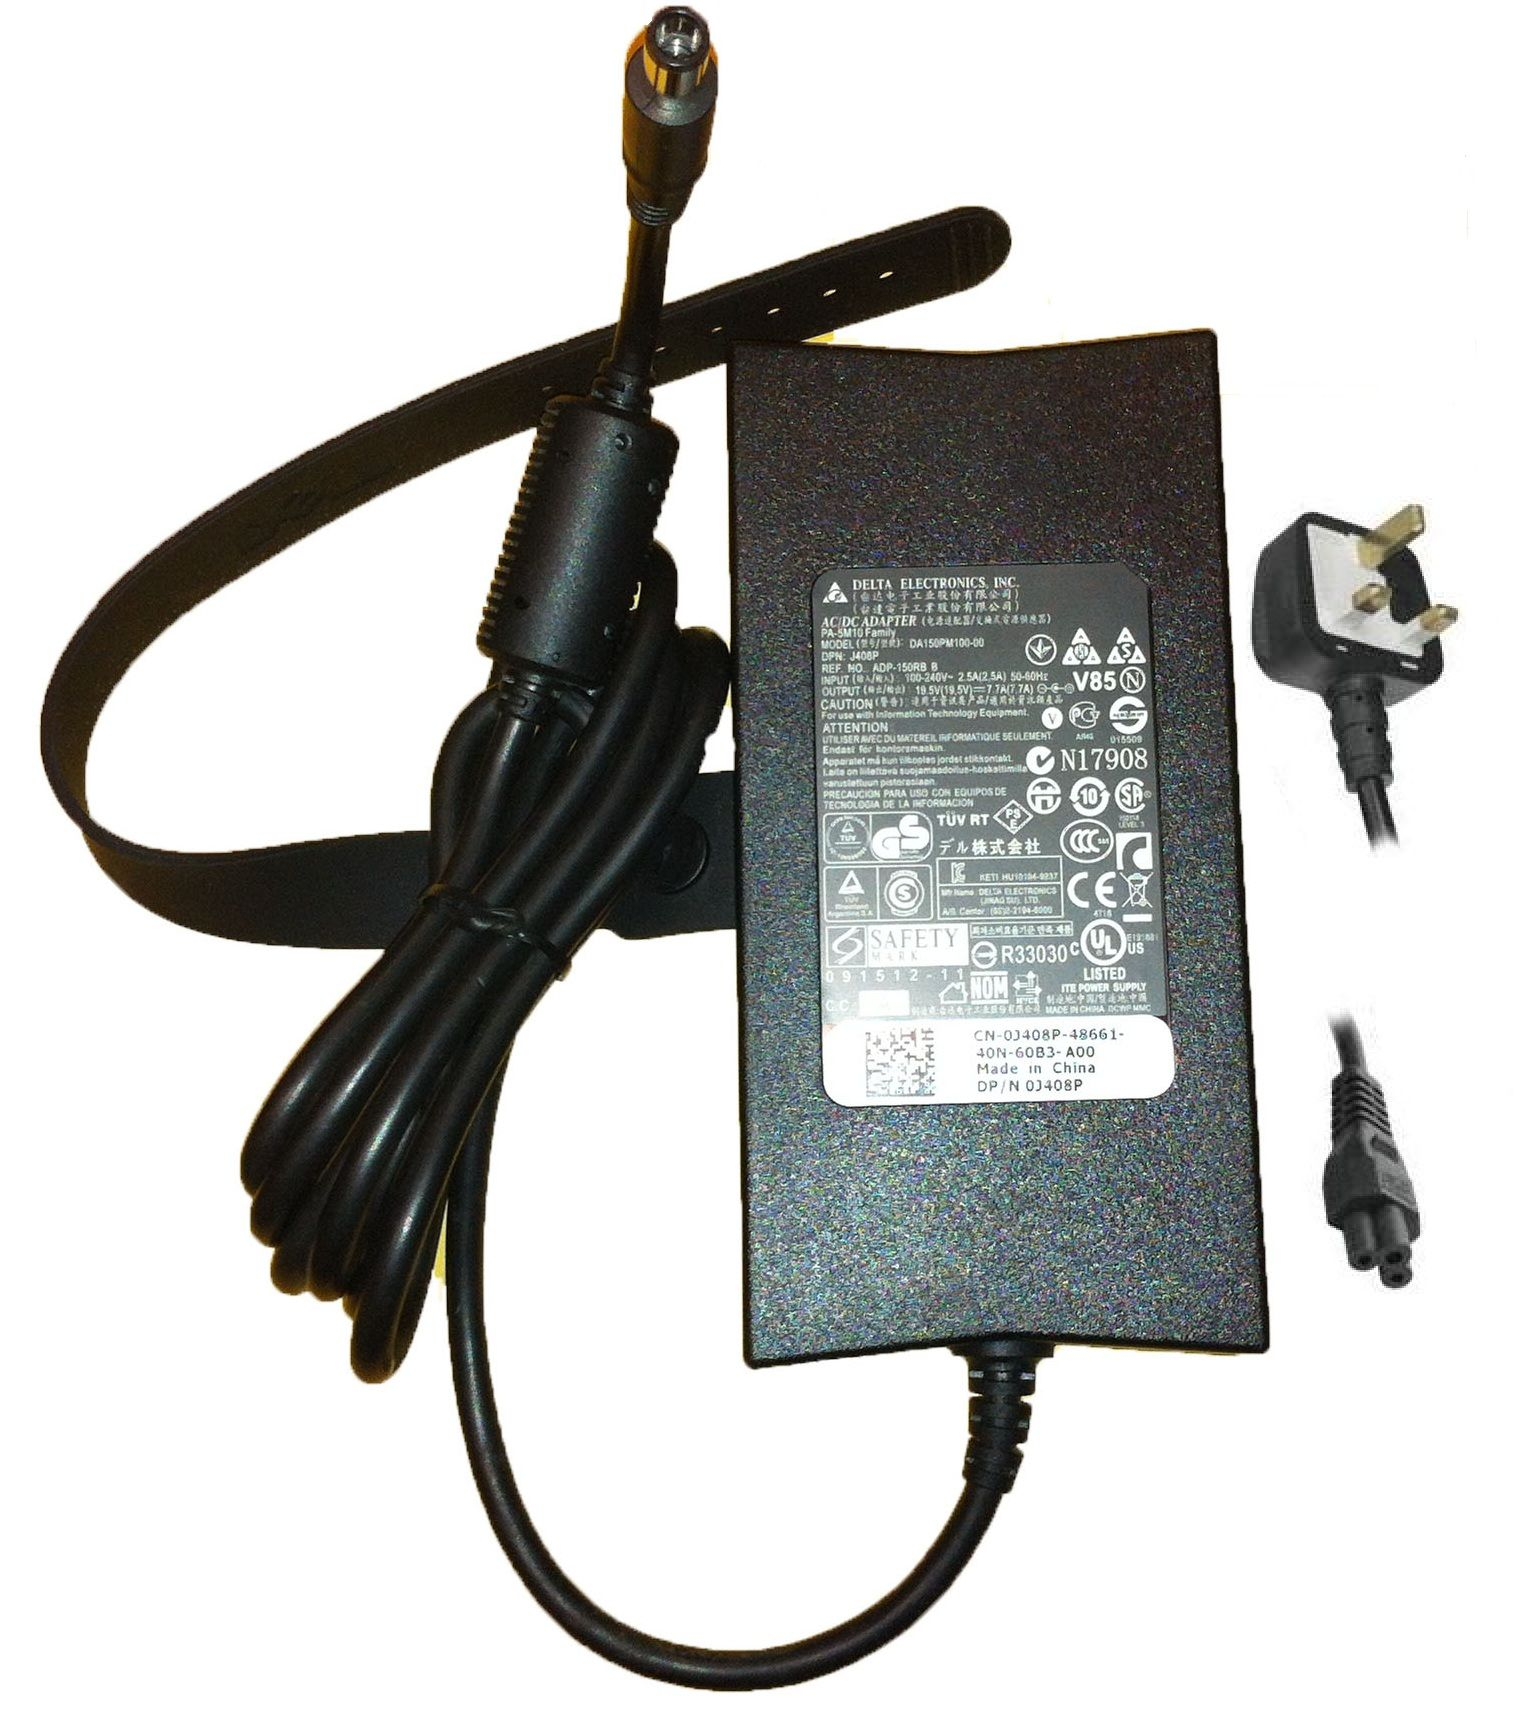 Dell Inspiron 5150 Laptop Charger Pa-15